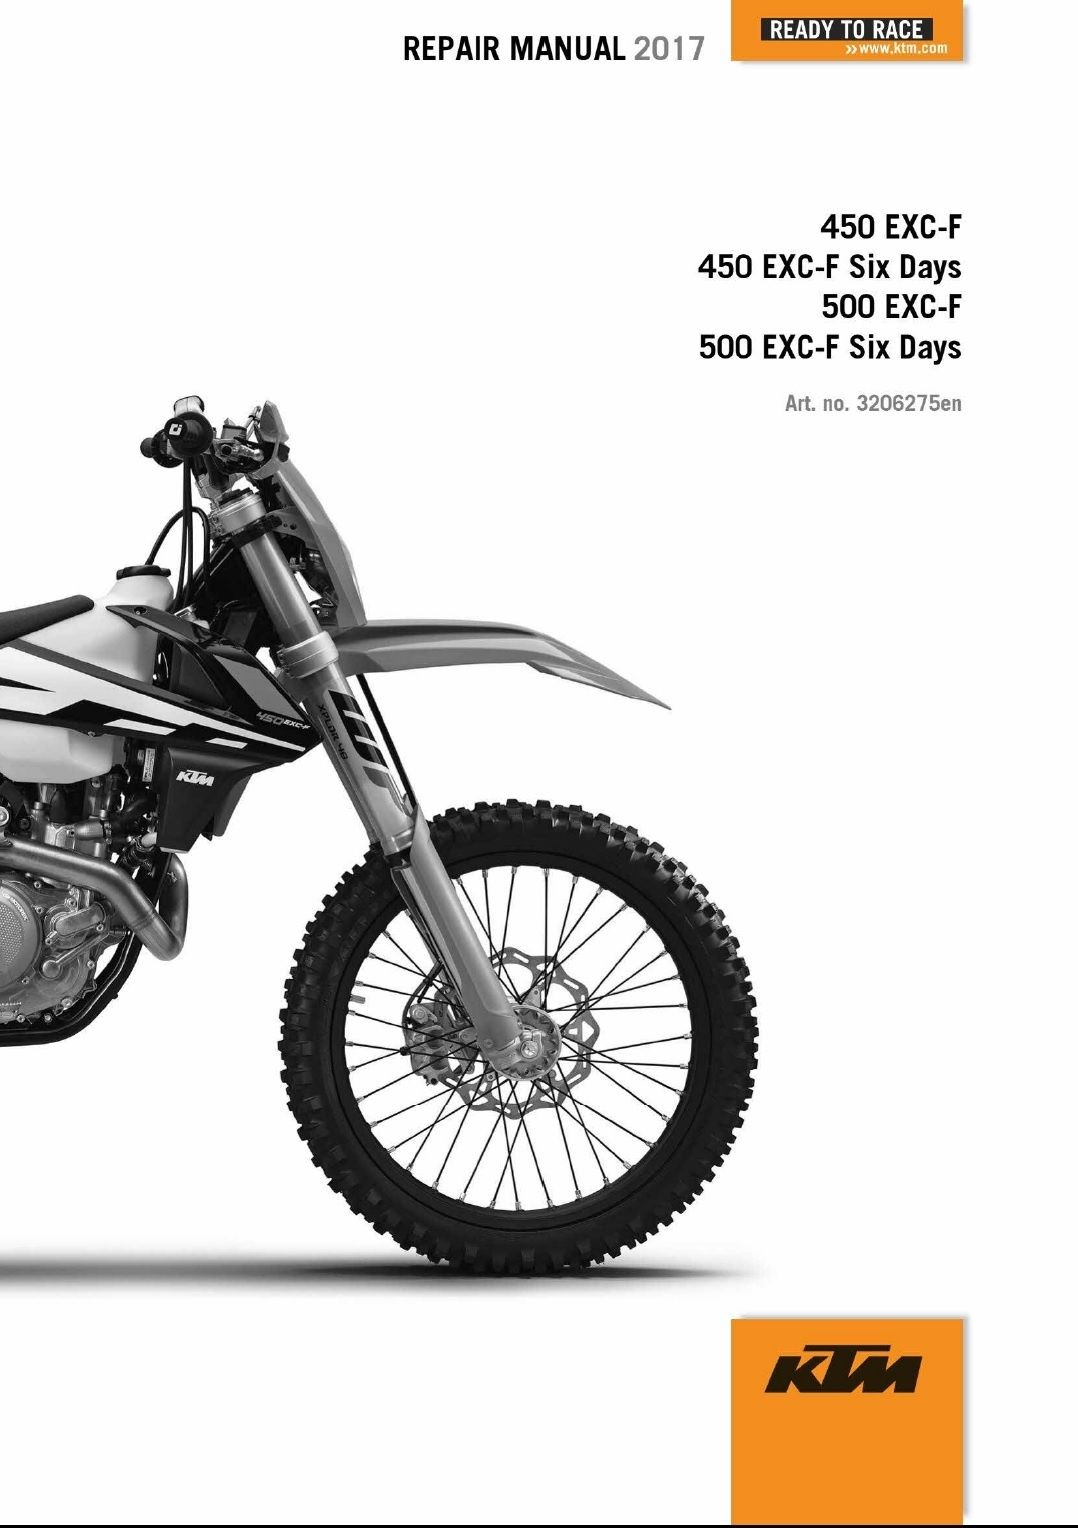 small resolution of covers all models listed above all repairs a z this is a genuine ktm complete service repiar manual for 2017 ktm 450 500 exc f